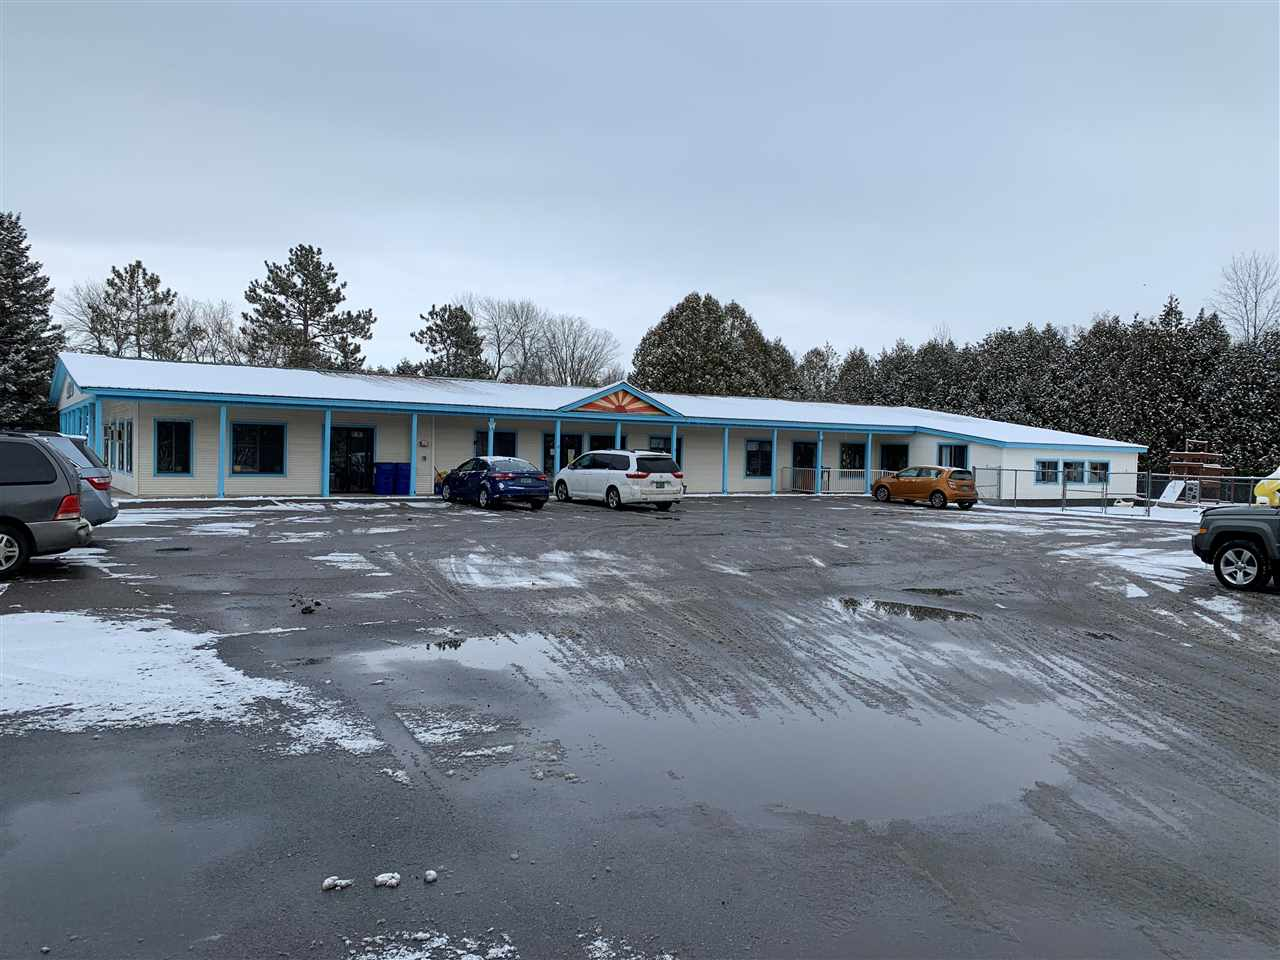 1.07 acre parcel, concrete building with just under 7000 sq ft and huge porch. Location across from new additions to Route 7 Shelburne – Rice Lumber, Healthy Living – Vibrant new area. Was strip mall now operating as a Day Care. Two kitchens and five bathrooms. Fenced area and ten exterior doors. High traffic count. Town water, town sewer, gas on site. Zoning allows for multiple commercial and residential uses. Excellent development potential.